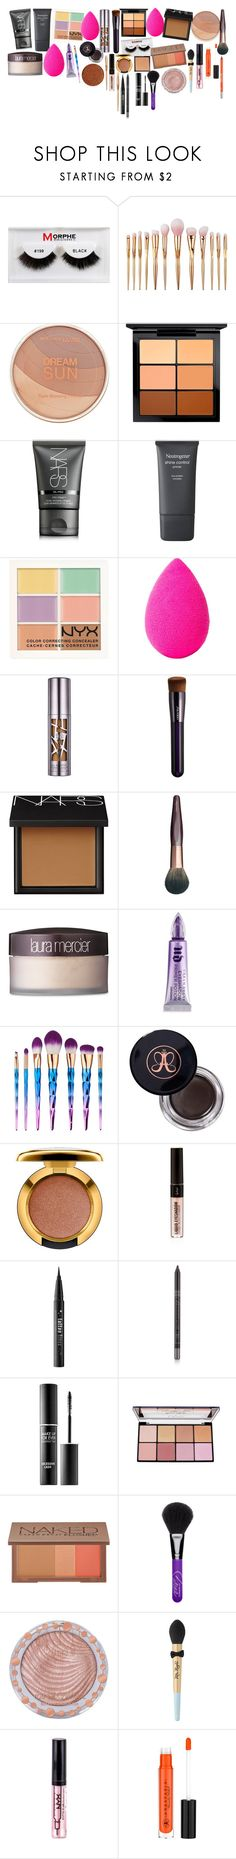 """aaa"" by rigormortisii ❤ liked on Polyvore featuring beauty, Morphe, Maybelline, MAC Cosmetics, NARS Cosmetics, Neutrogena, NYX, beautyblender, Urban Decay and Shiseido"